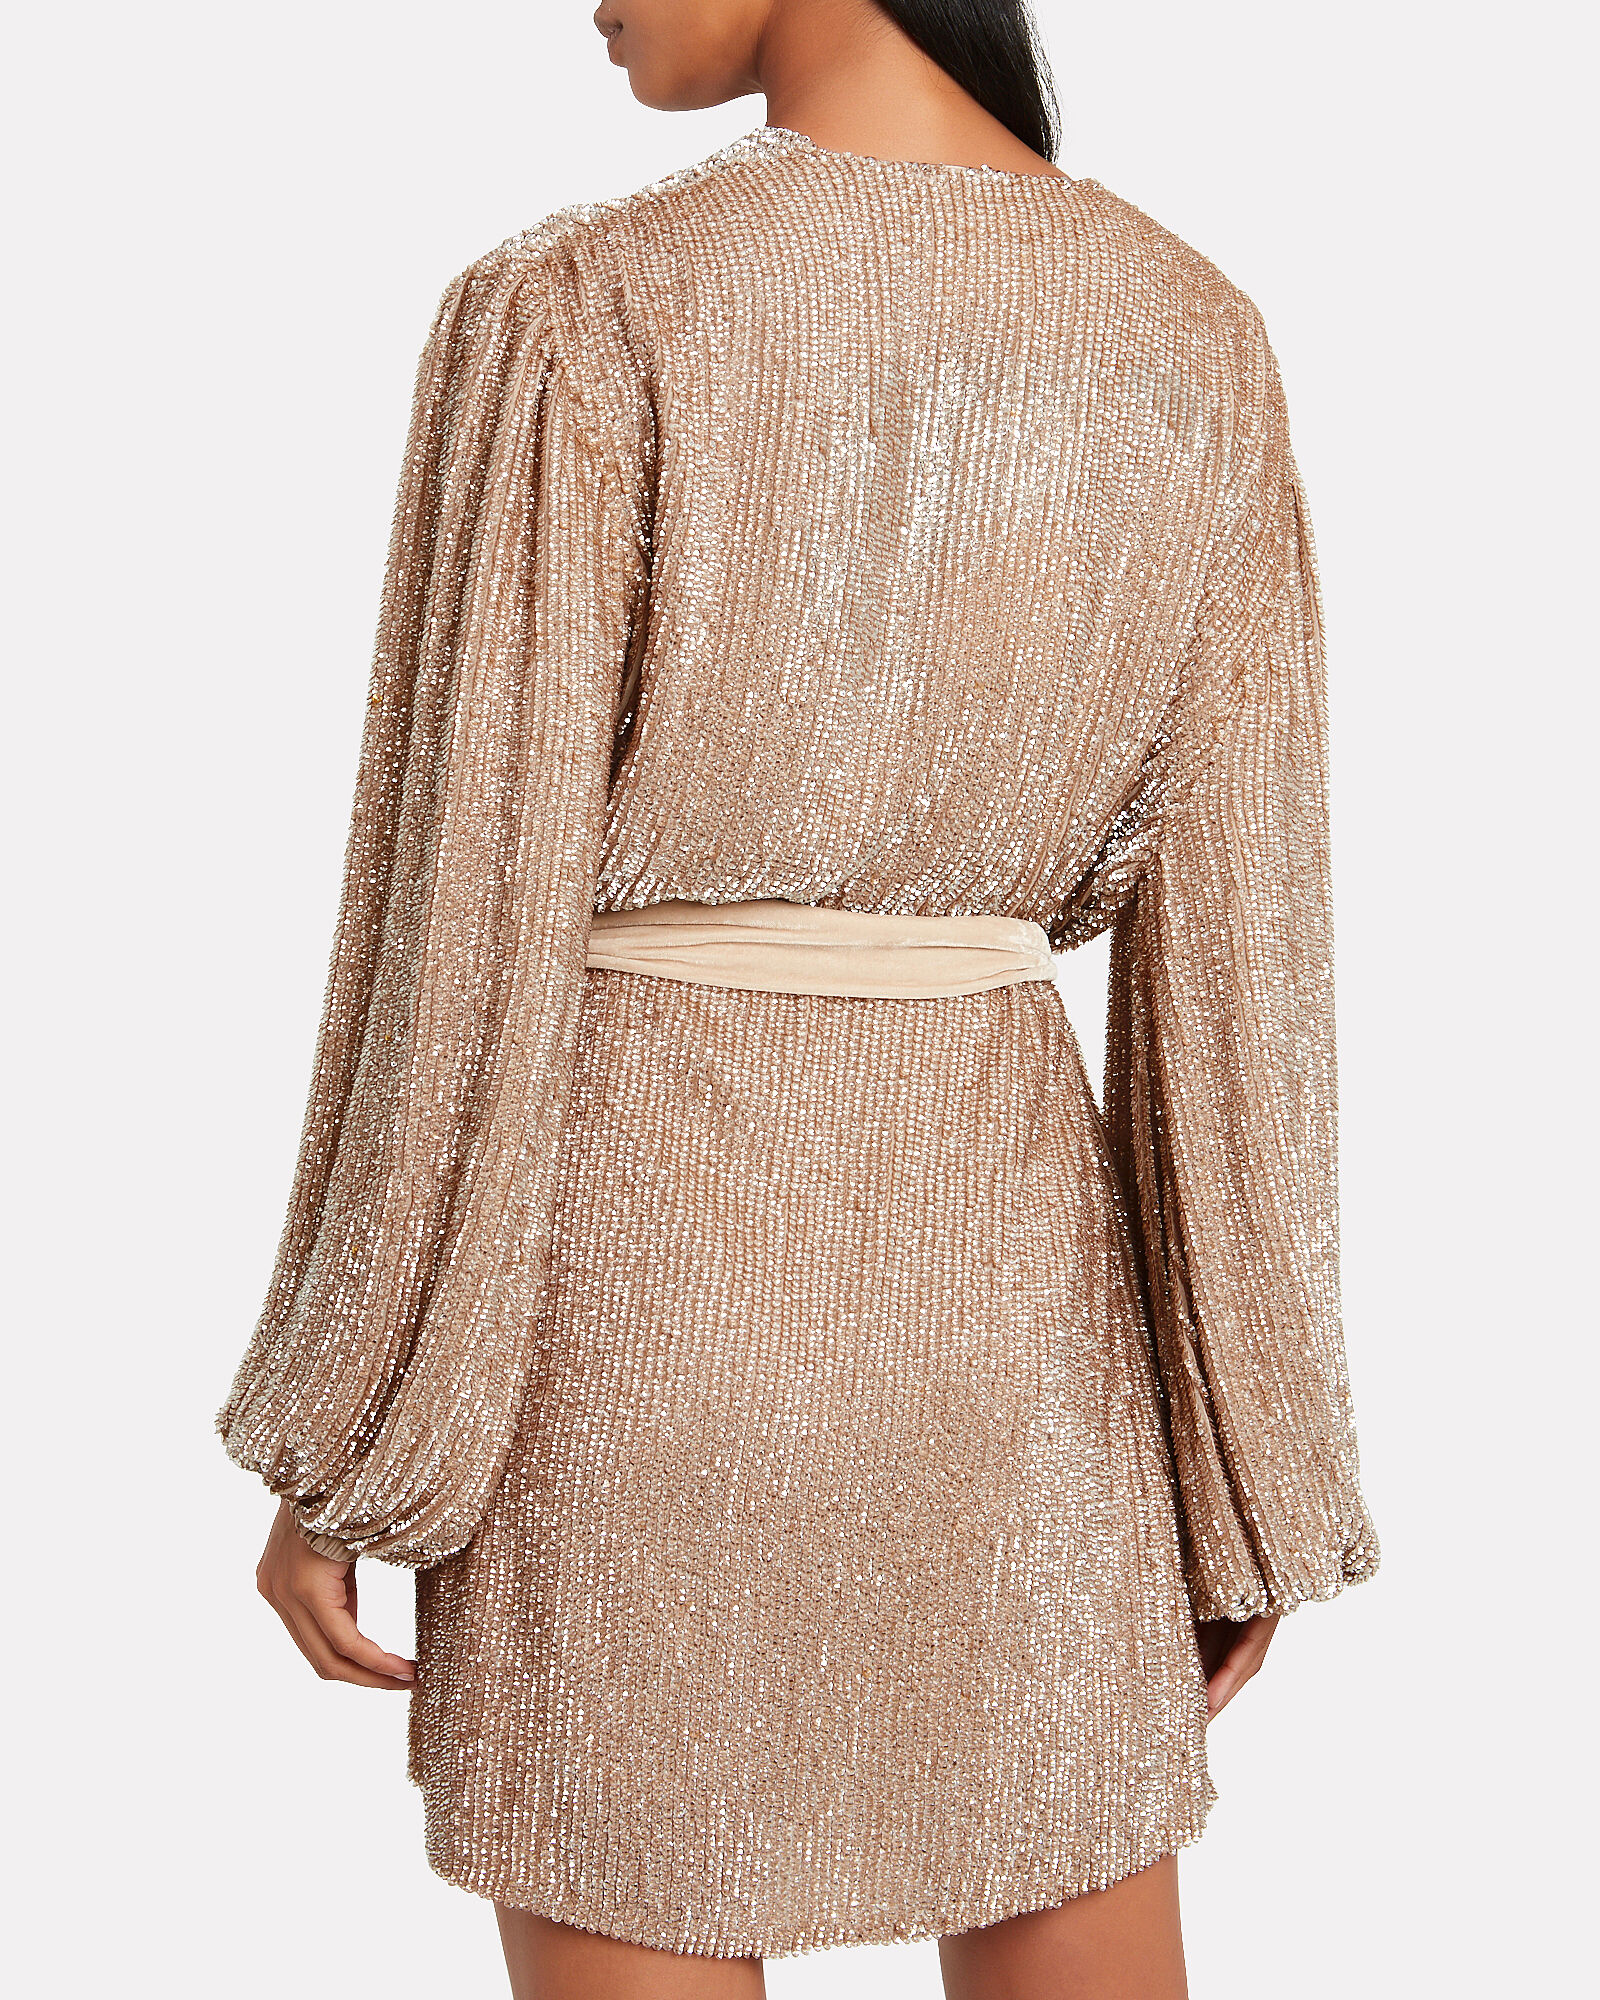 Gabrielle Sequin Mini Dress, TAUPE, hi-res